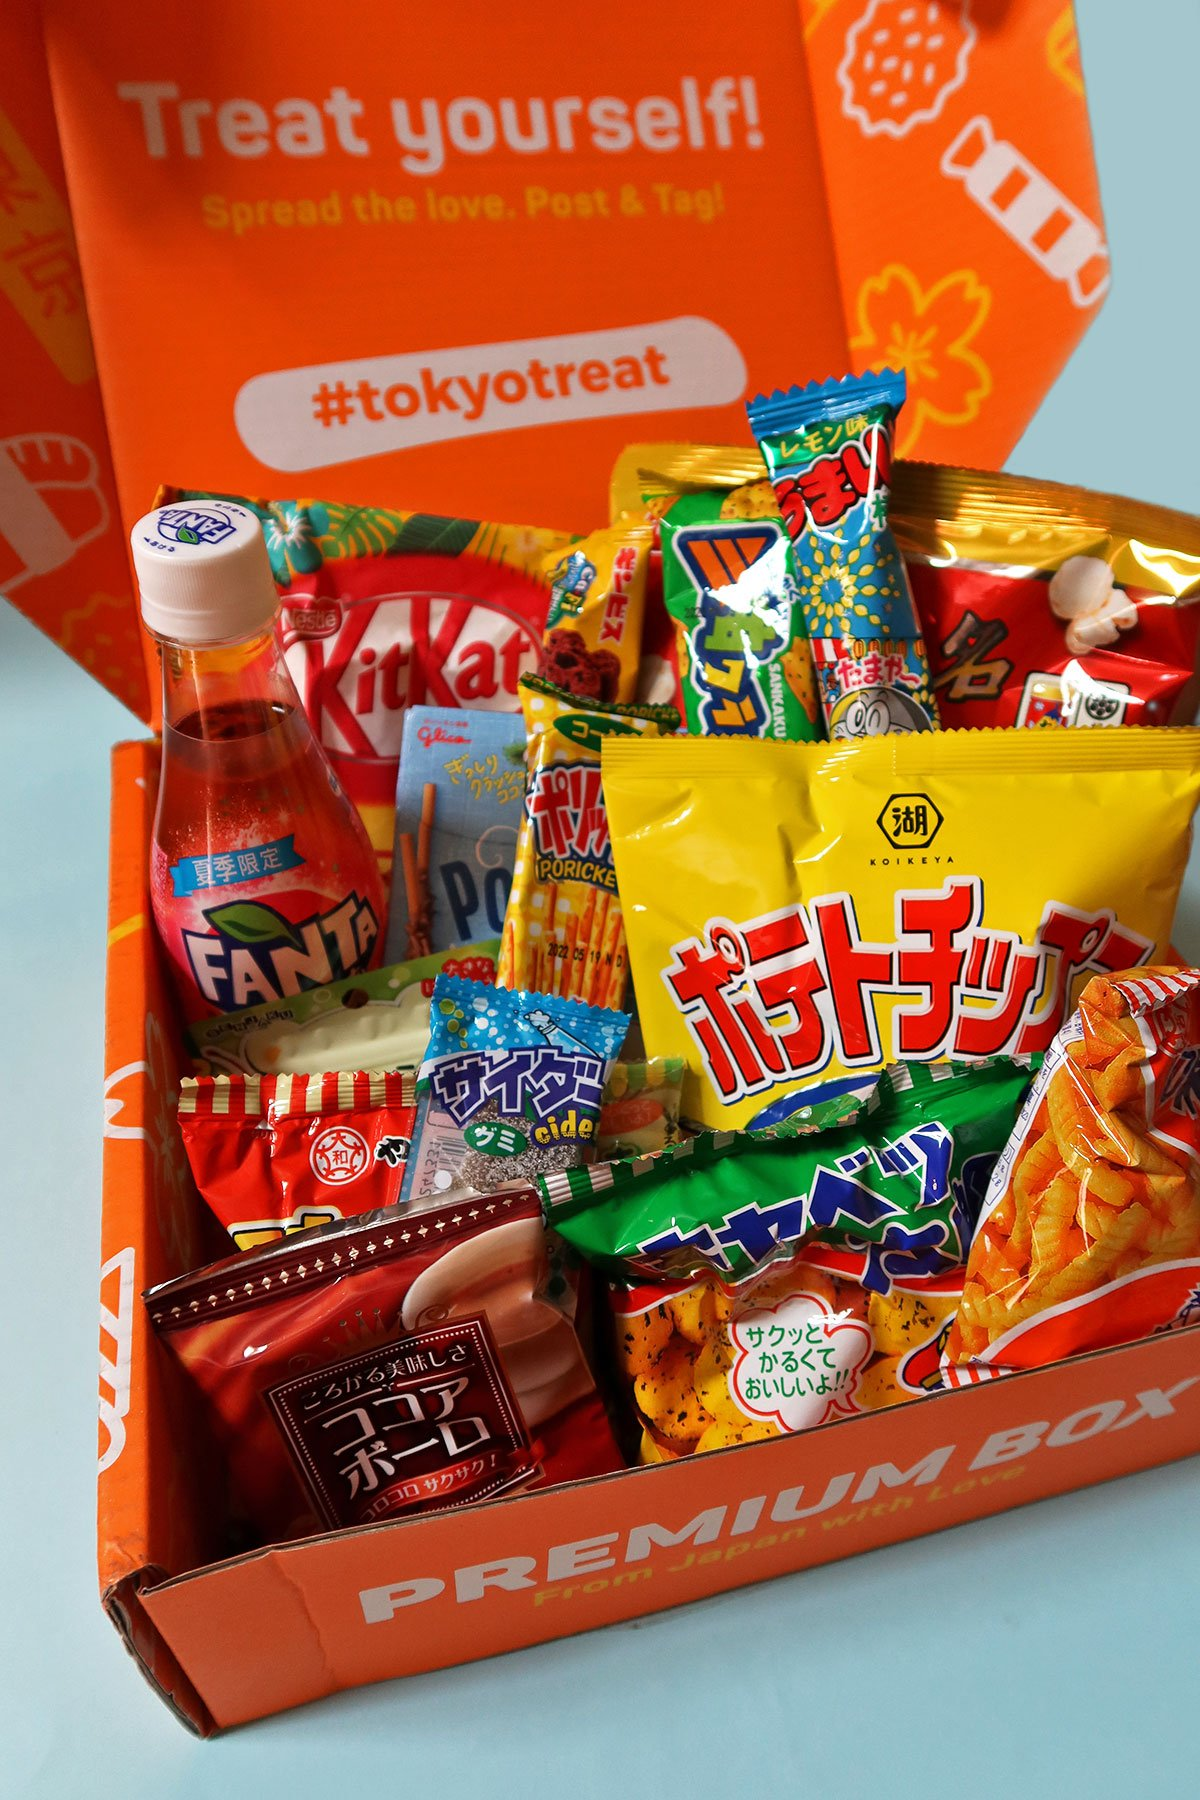 TokyoTreat's signature orange box loaded with Kit Kat bars, snack chips, party pack candies, drinks, DIY kits, etc